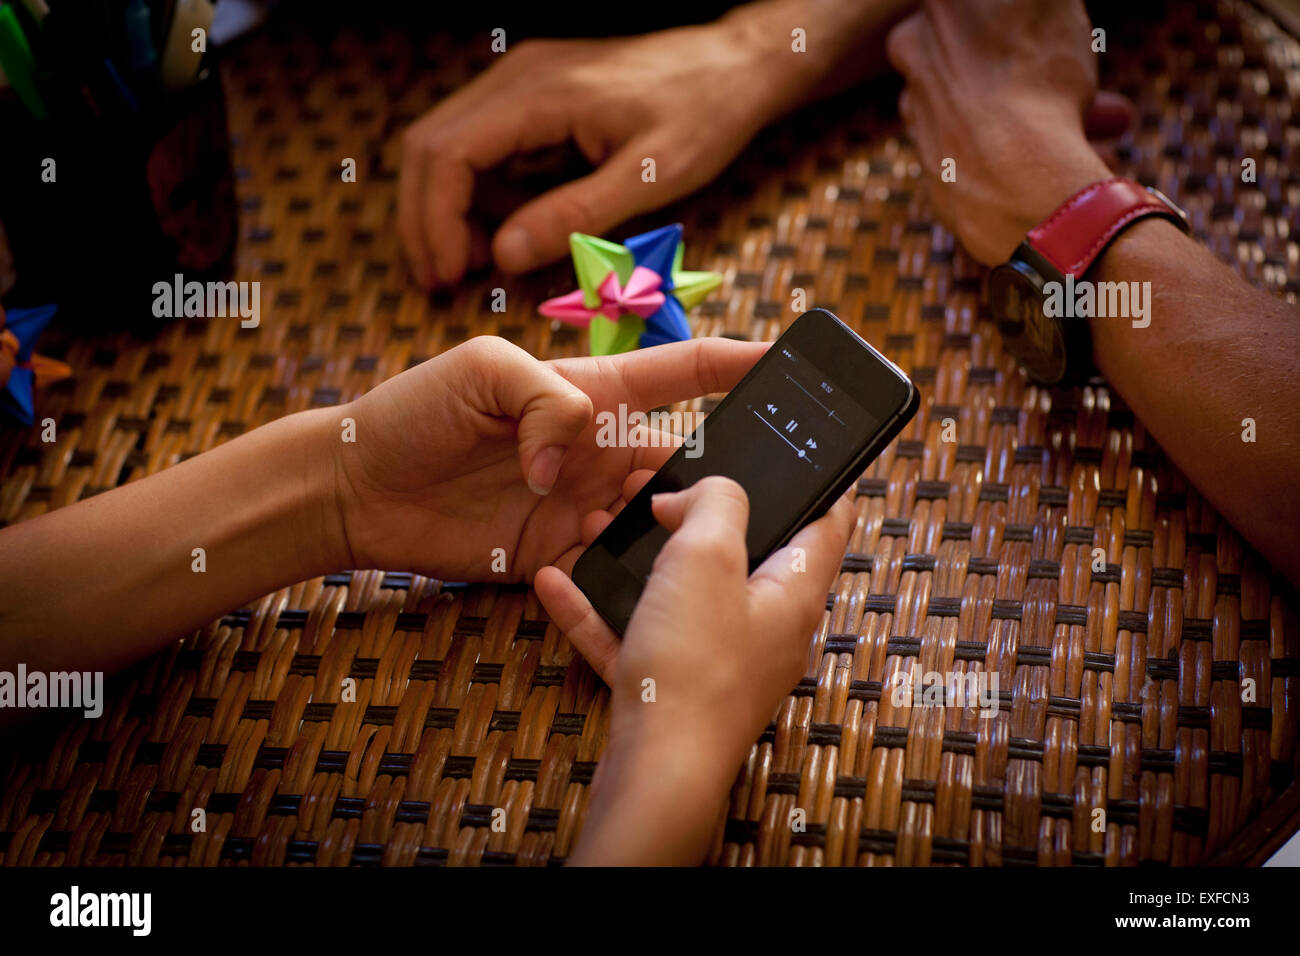 Students texting and relaxing, partial view of hands - Stock Image